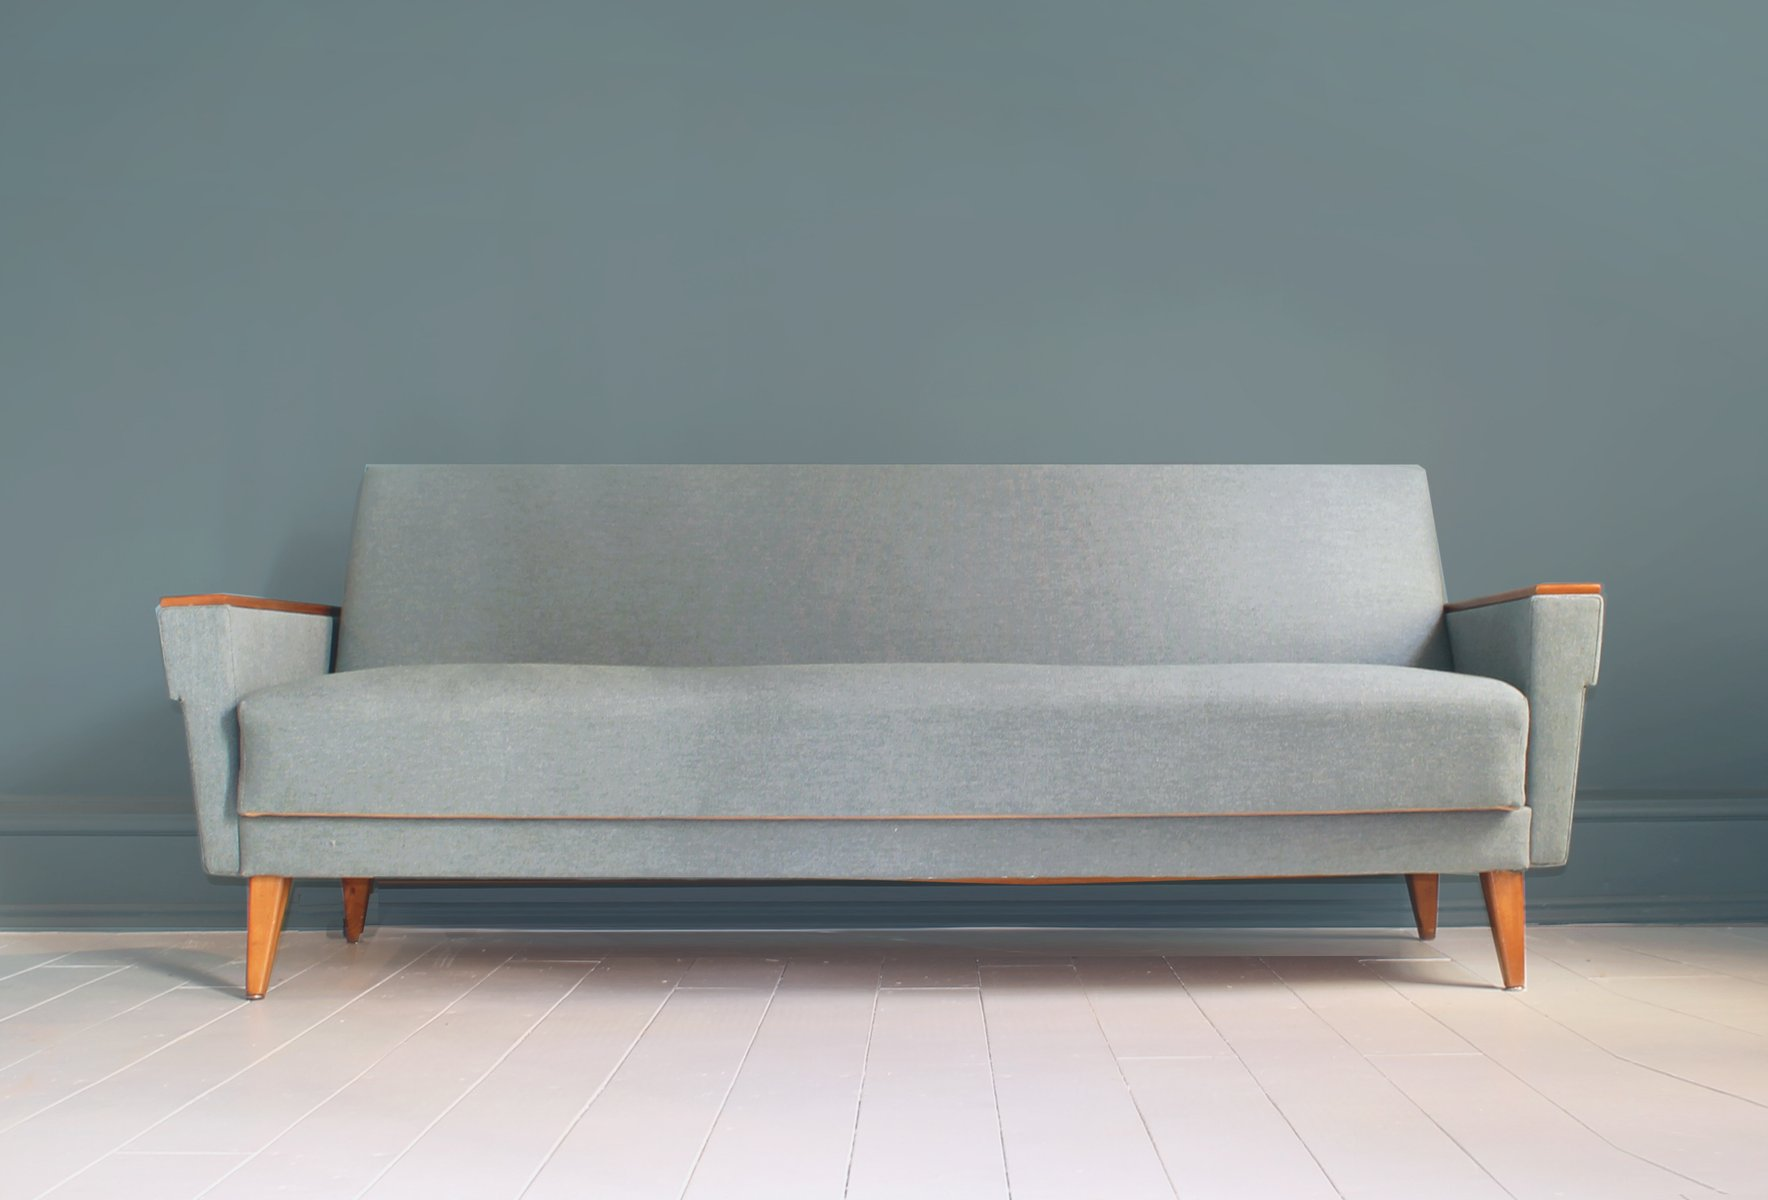 Mid Century Danish Sofa With Sustainable Upholstery For Sale At Pamono